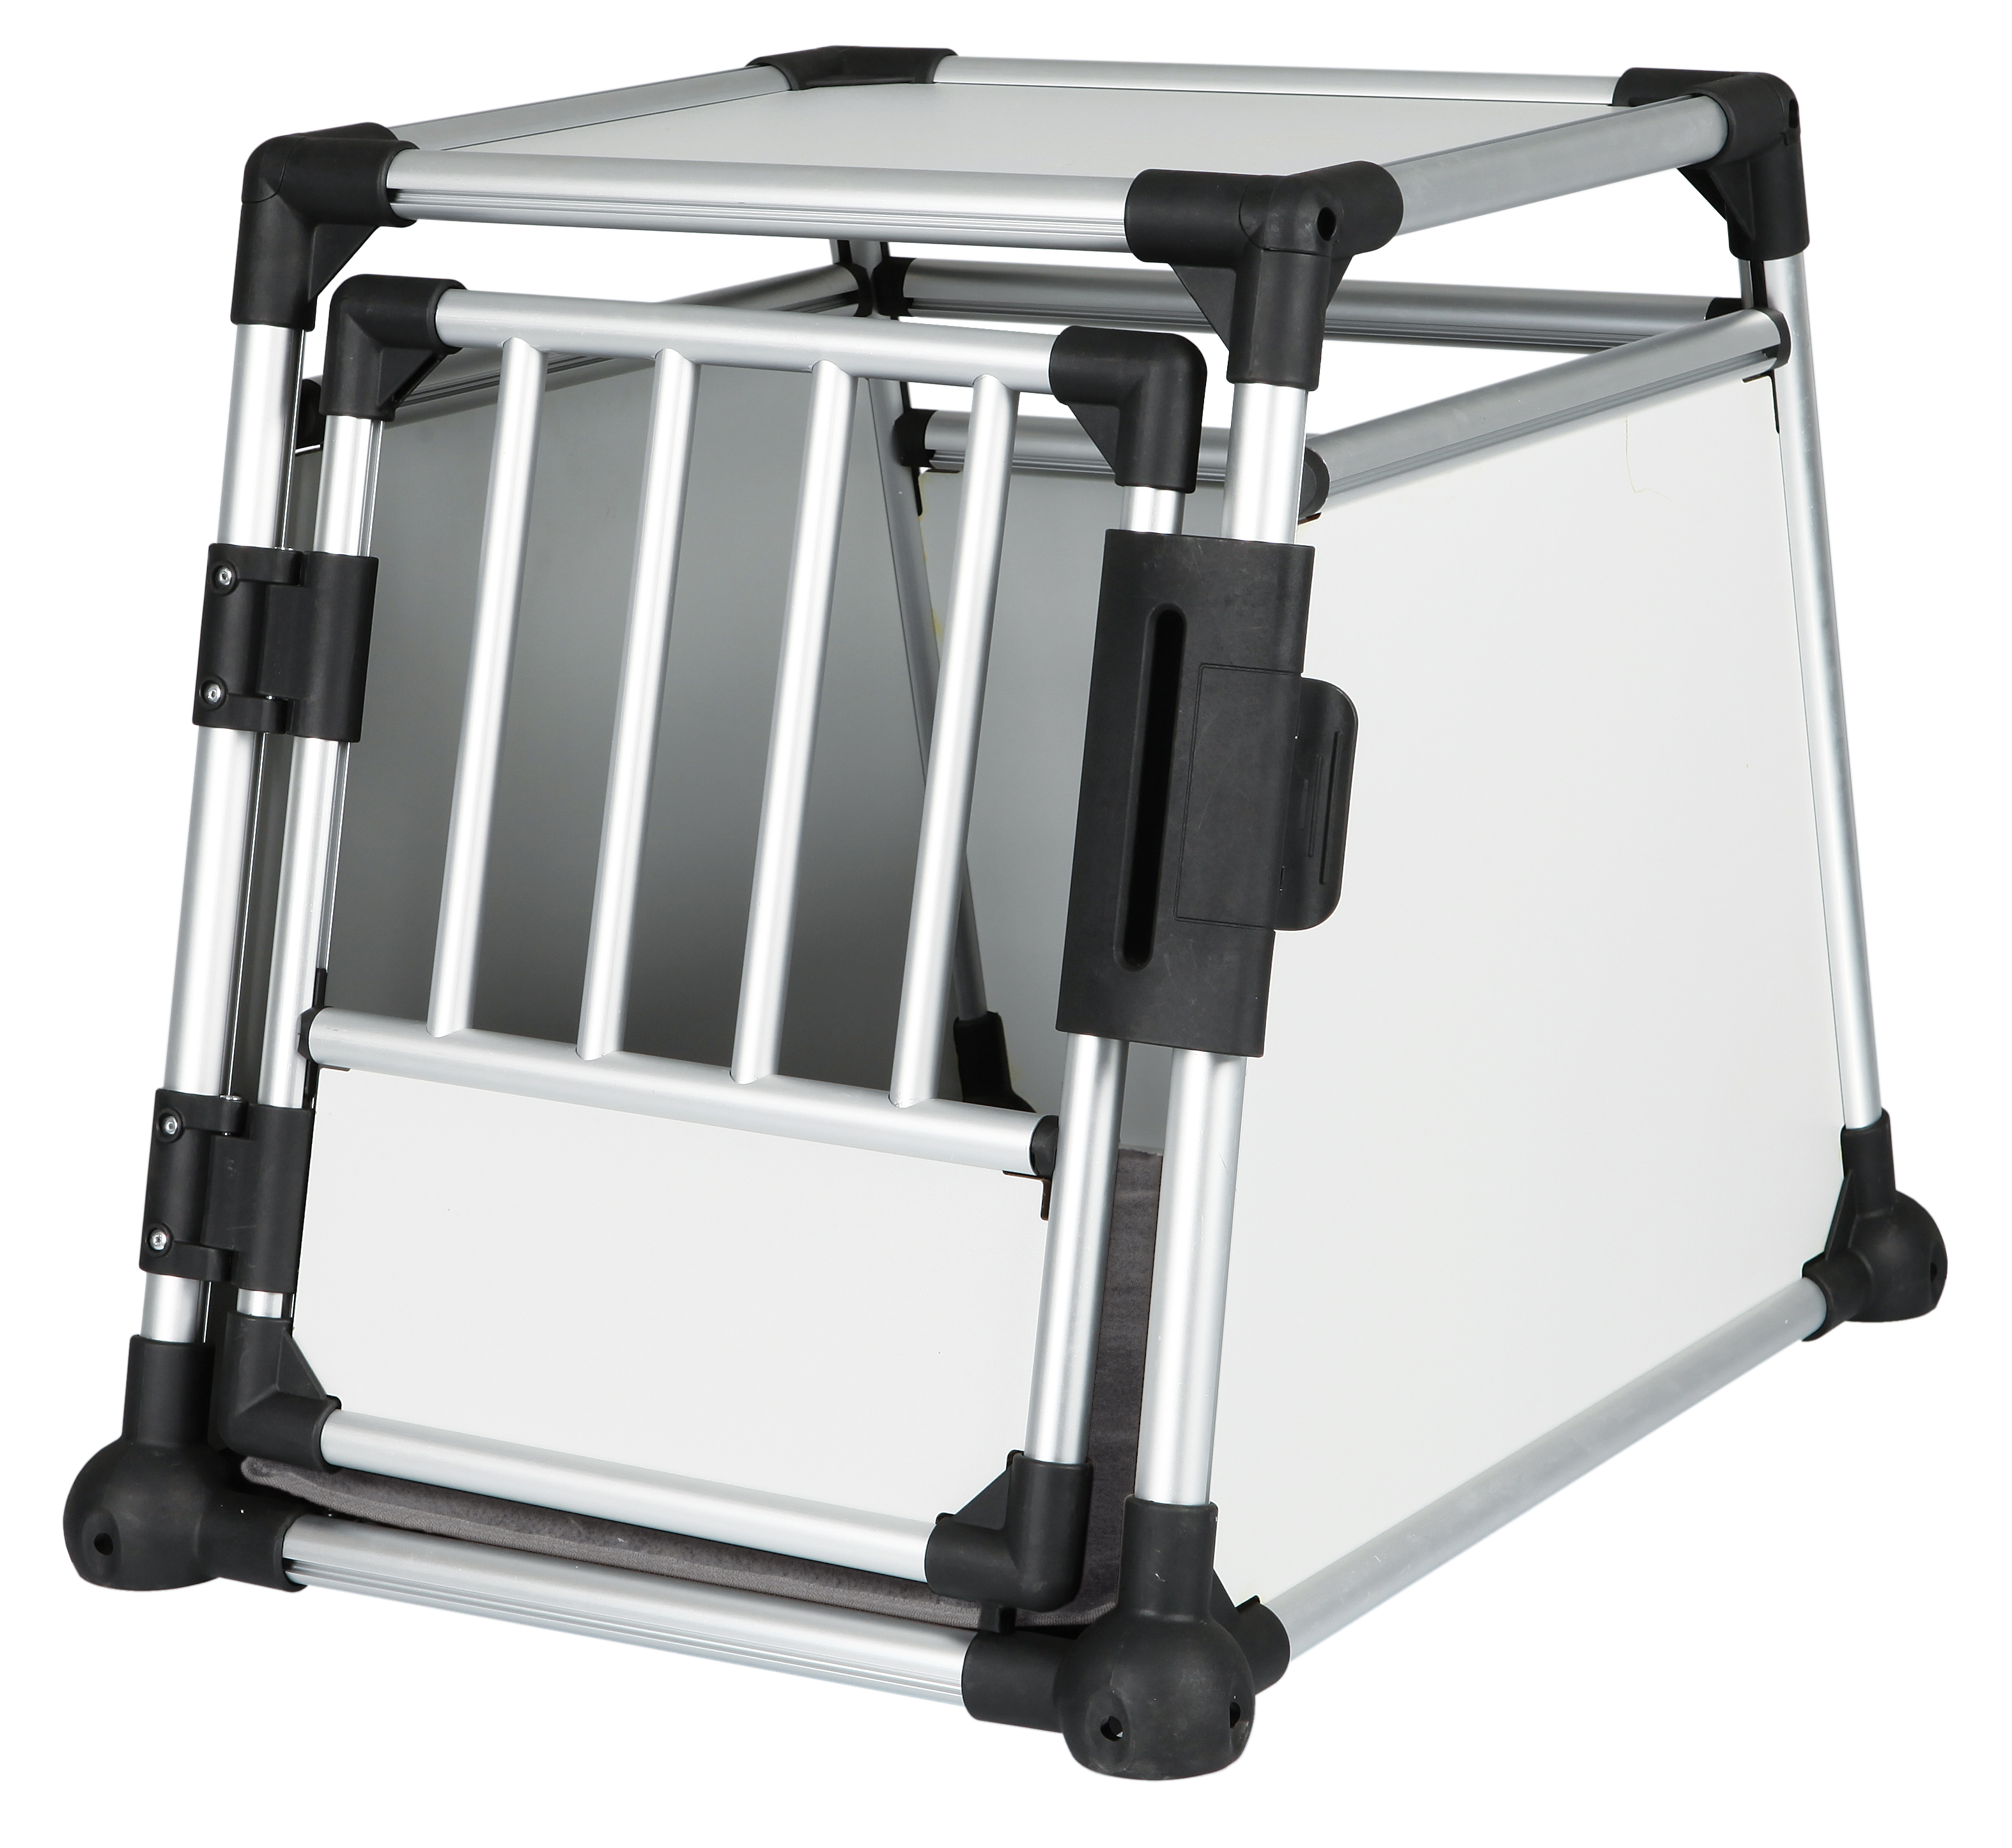 Trixie Pet Scratch-Resistant Metallic Crate (M)